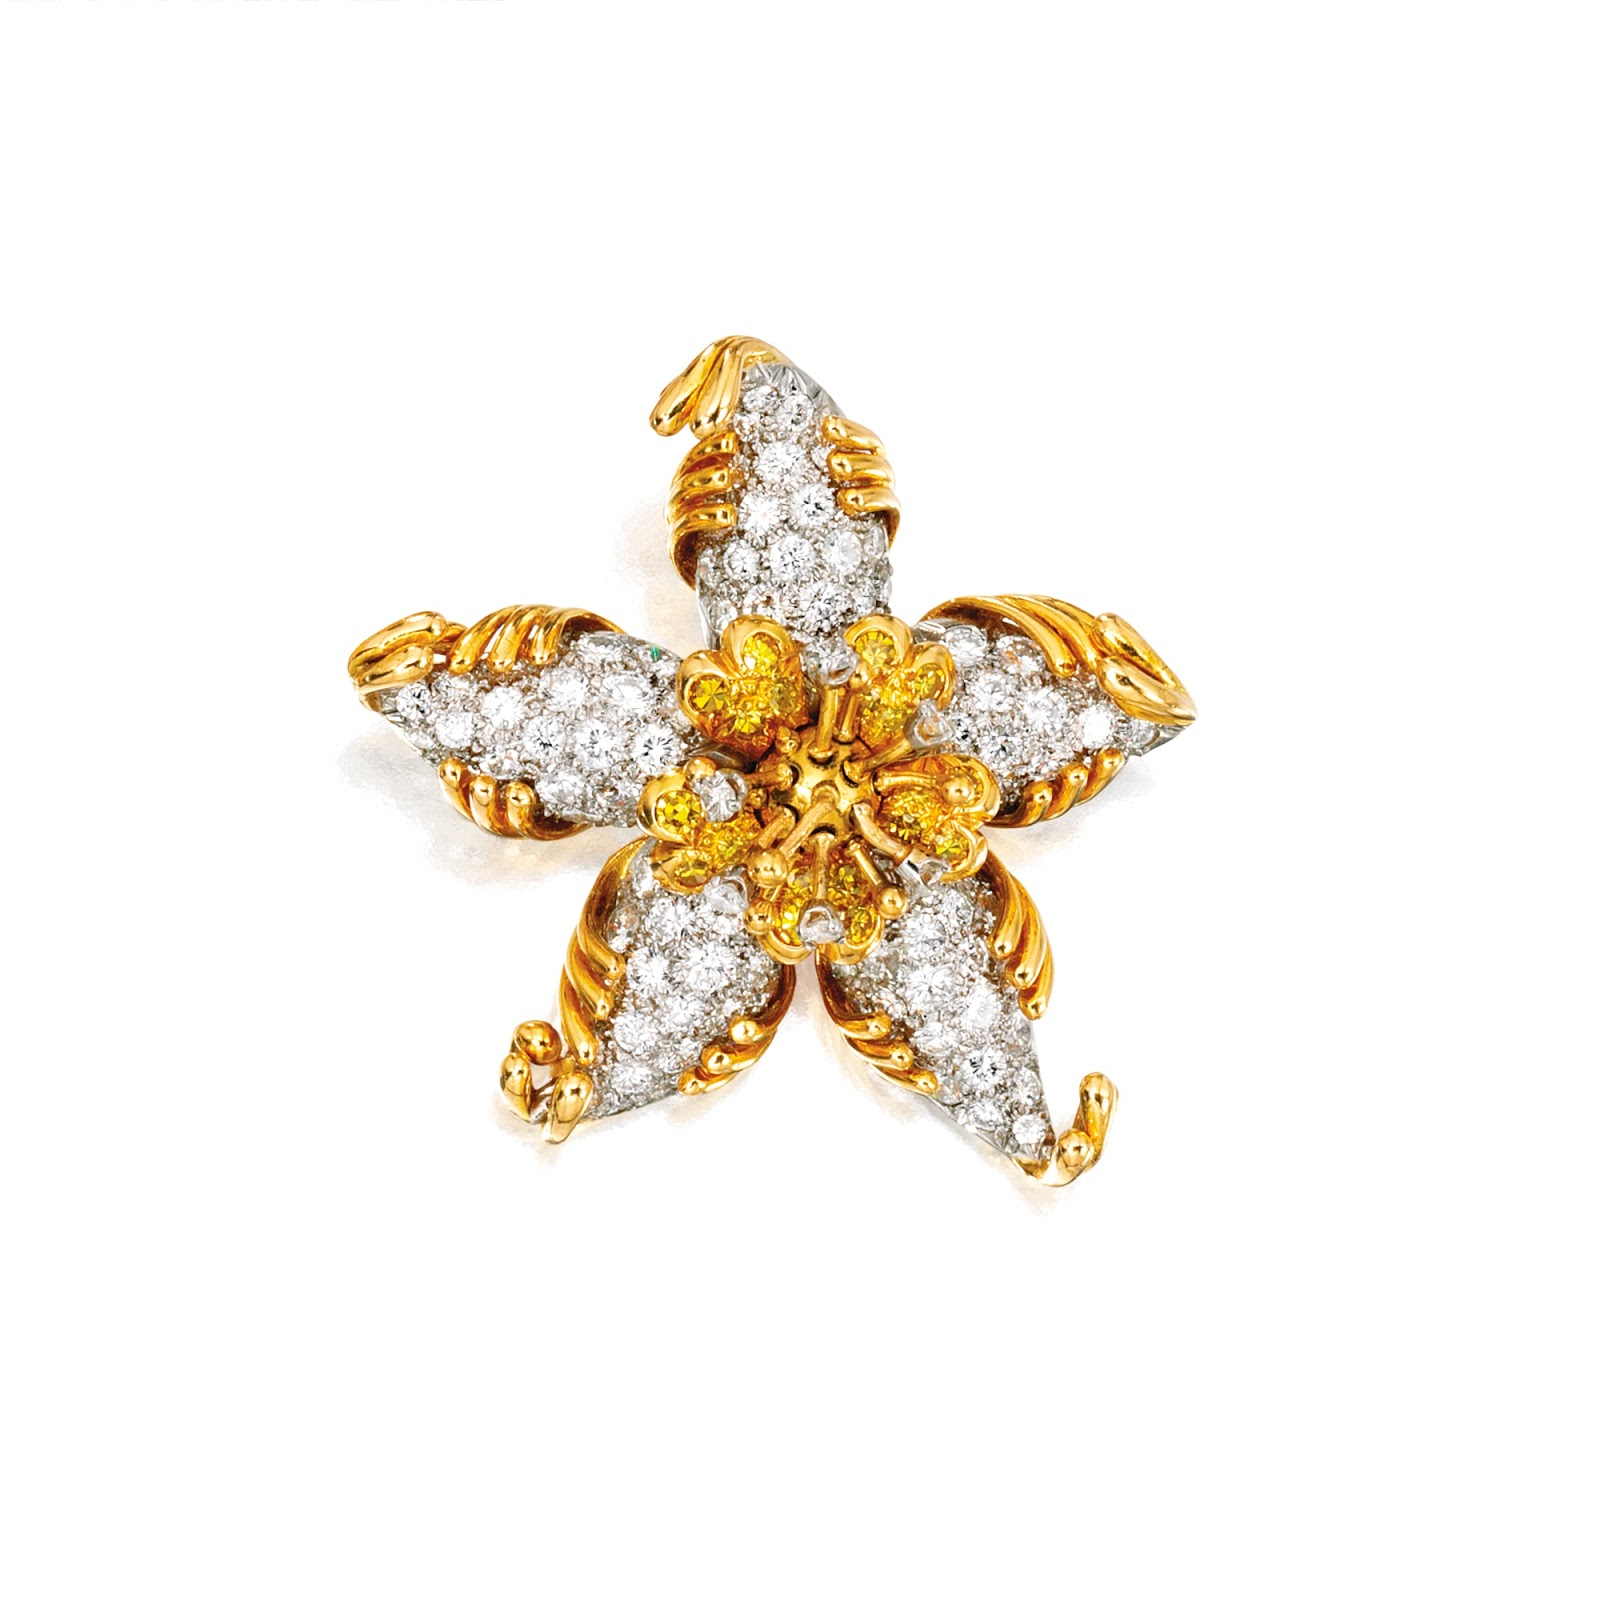 Marie Poutine's Jewels & Royals: Jewels by Schlumberger II Gold And Diamonds